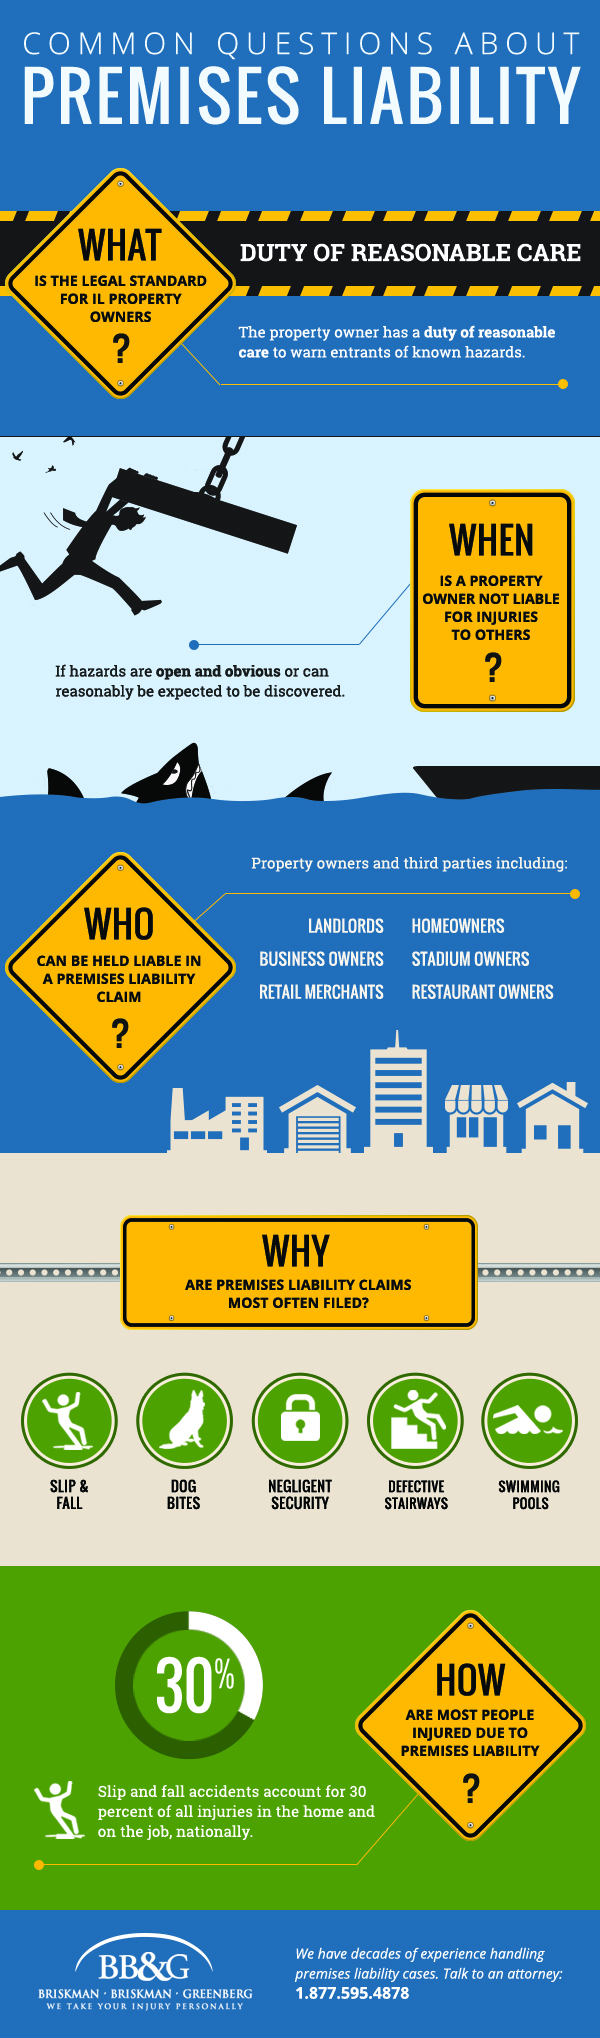 This infographic answers common Chicago premises liability questions.